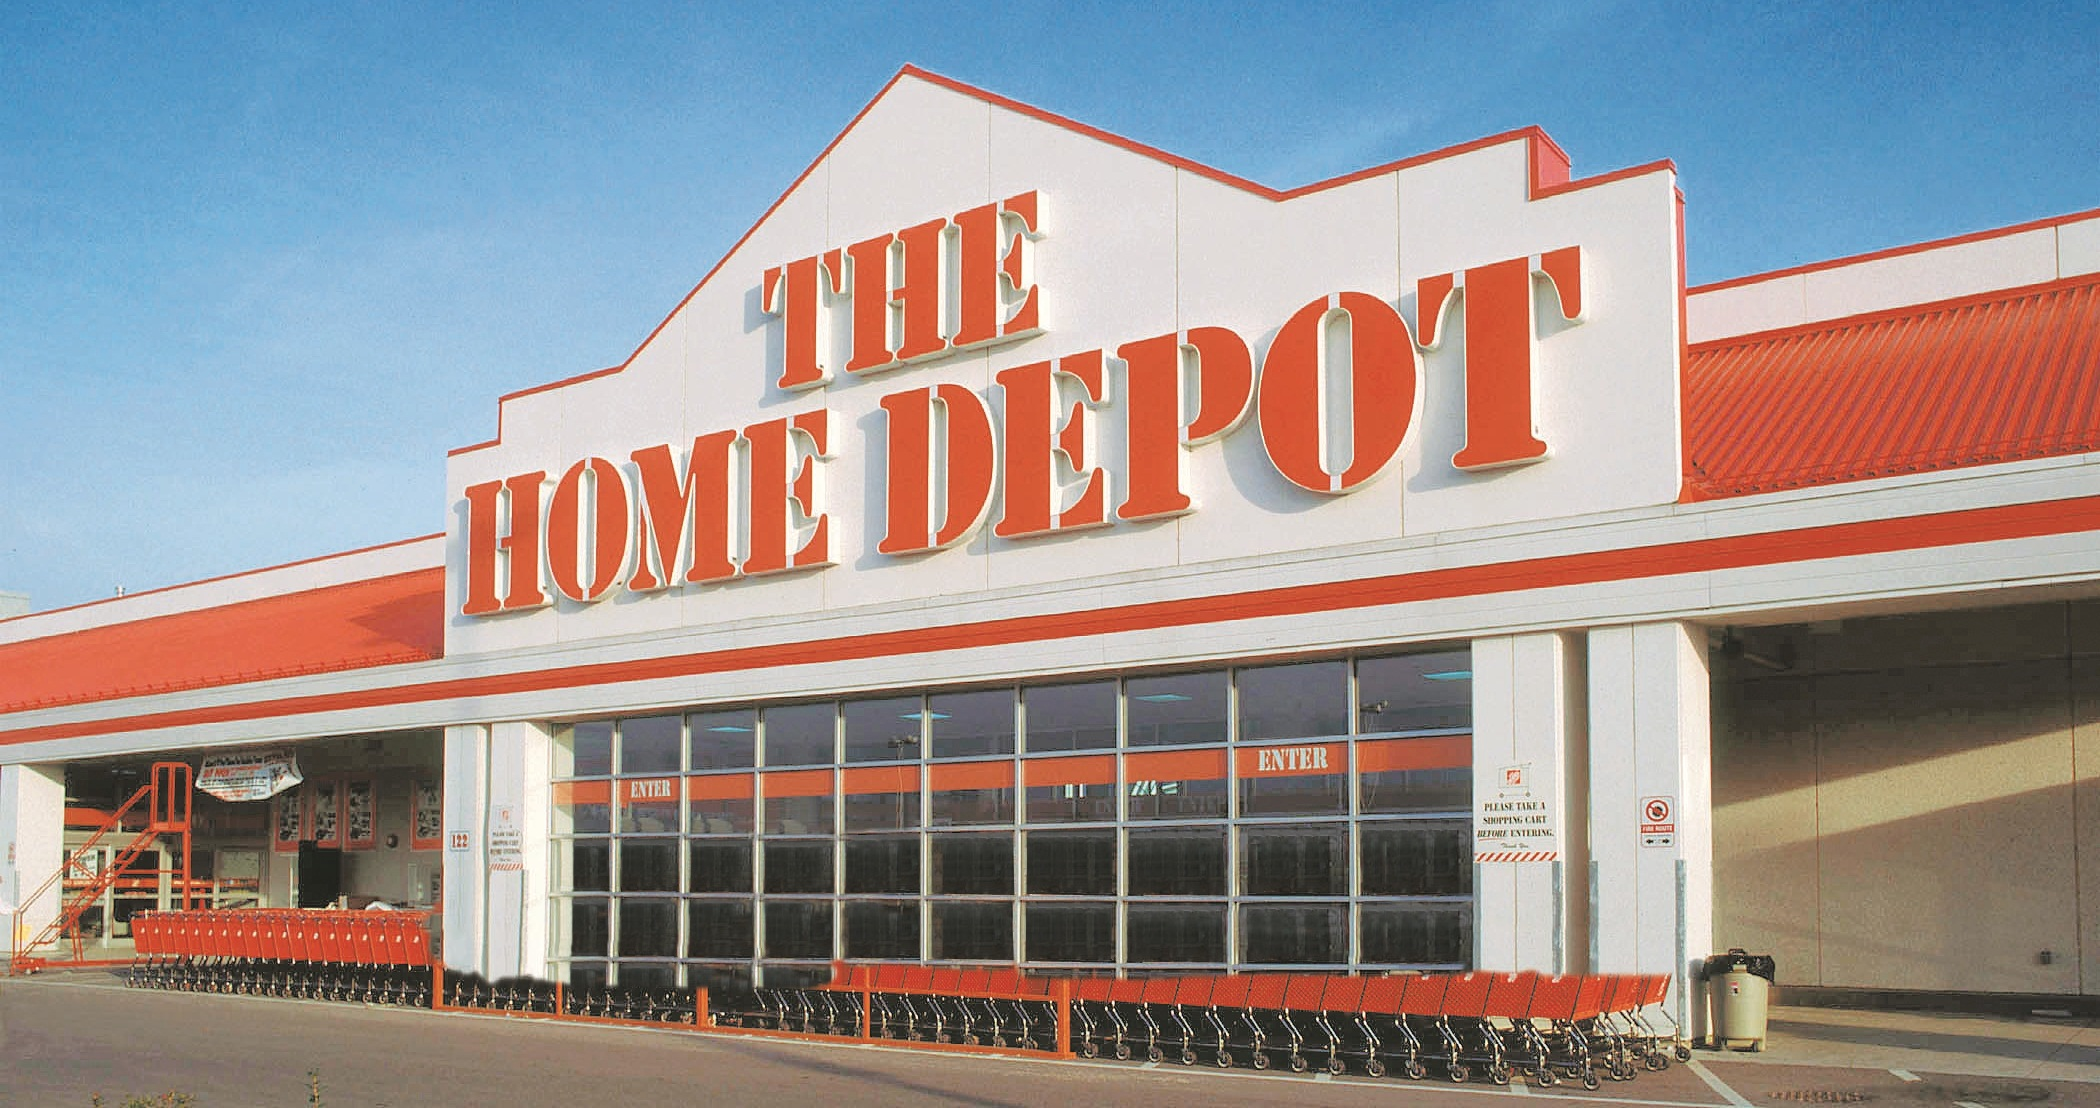 Home depot customer service headquarters and phone numbers